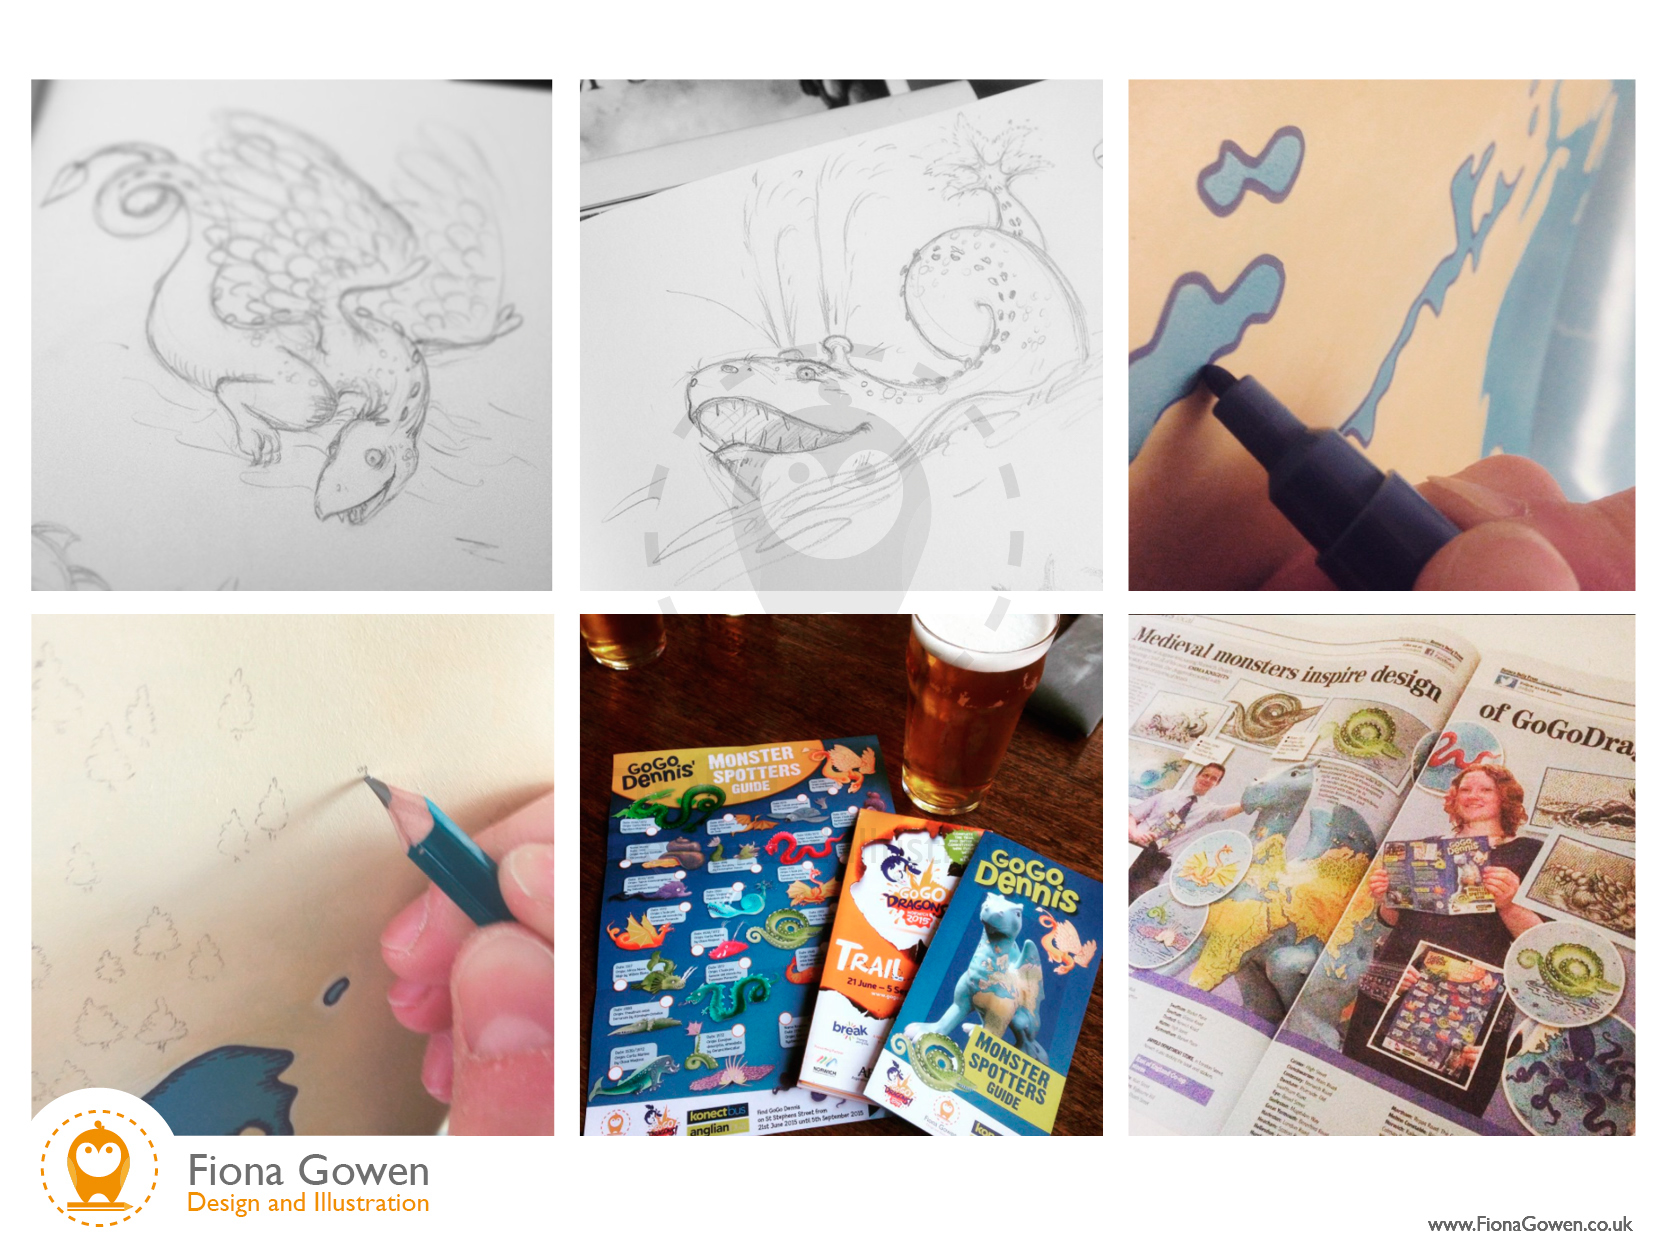 Work in progress shots of illustrated map and map monsters featured on 2015 dragon sculpture, painted by Fiona Gowen for gogodragons 2015 in Norwich